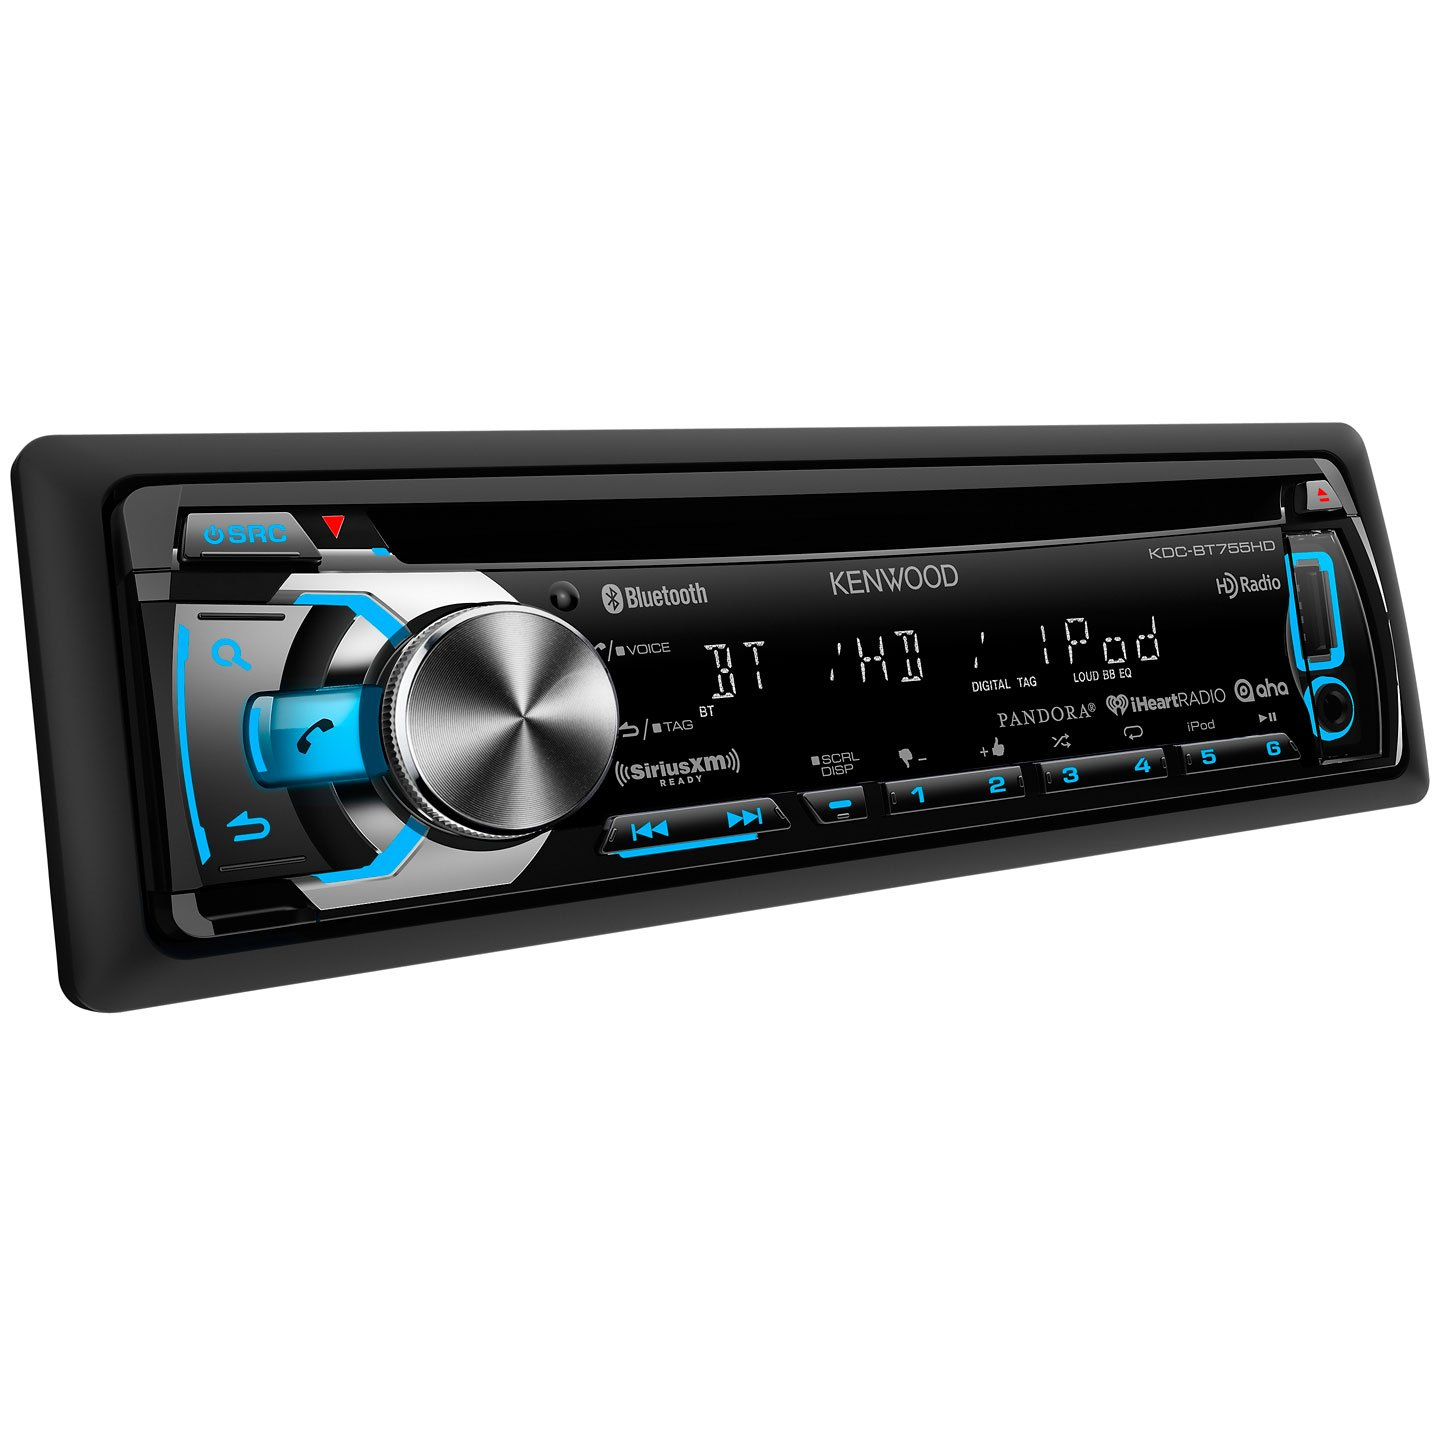 Kenwood Kdc Bt755hd Single Din In Dash Cd Siriusxmtm 300 Player Wiring Diagram Ready Receiver With Bluet Cell Phones Accessories